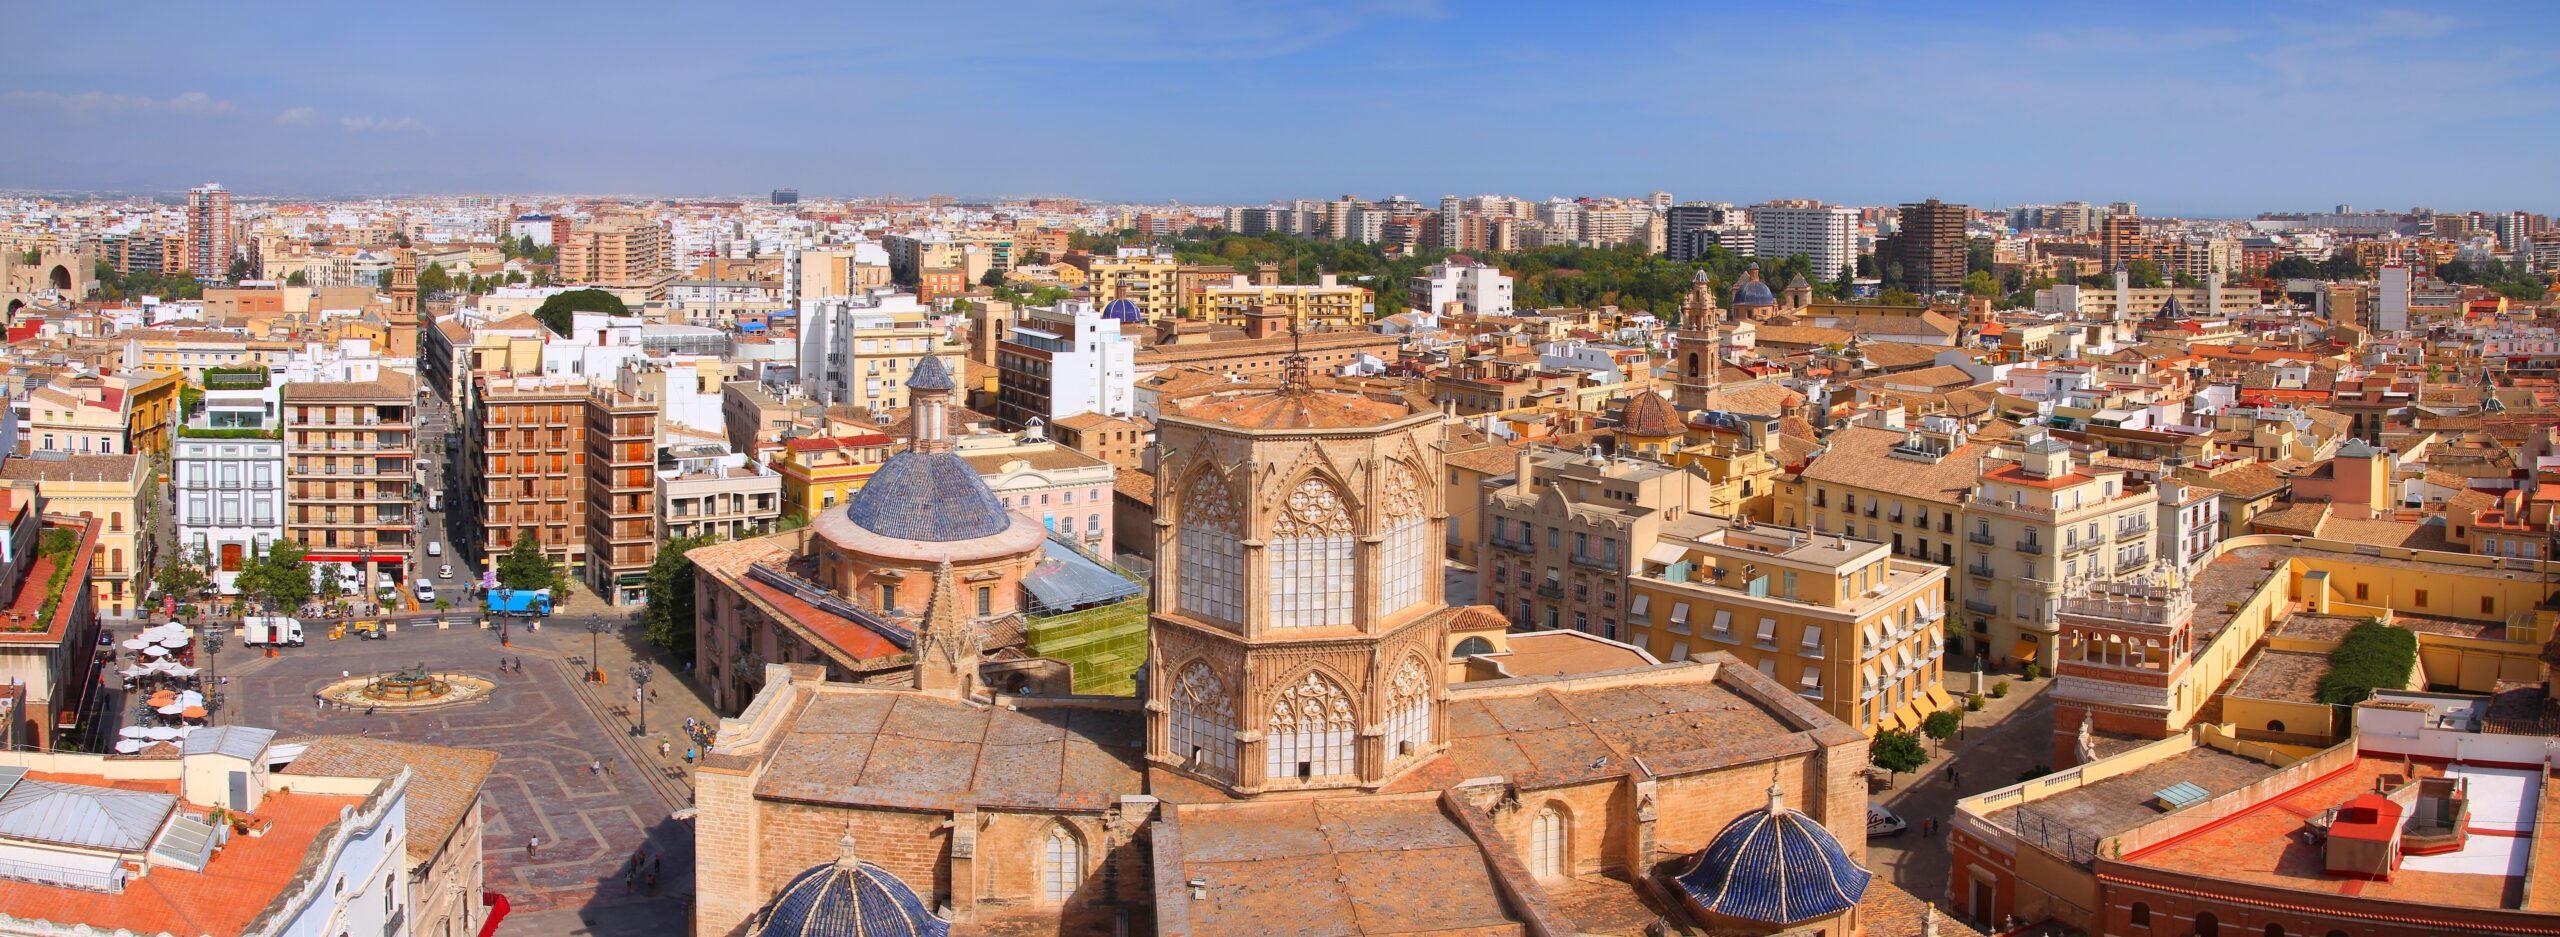 Explore Valencia Old Town In Our Old Town Valencia Walking Tour